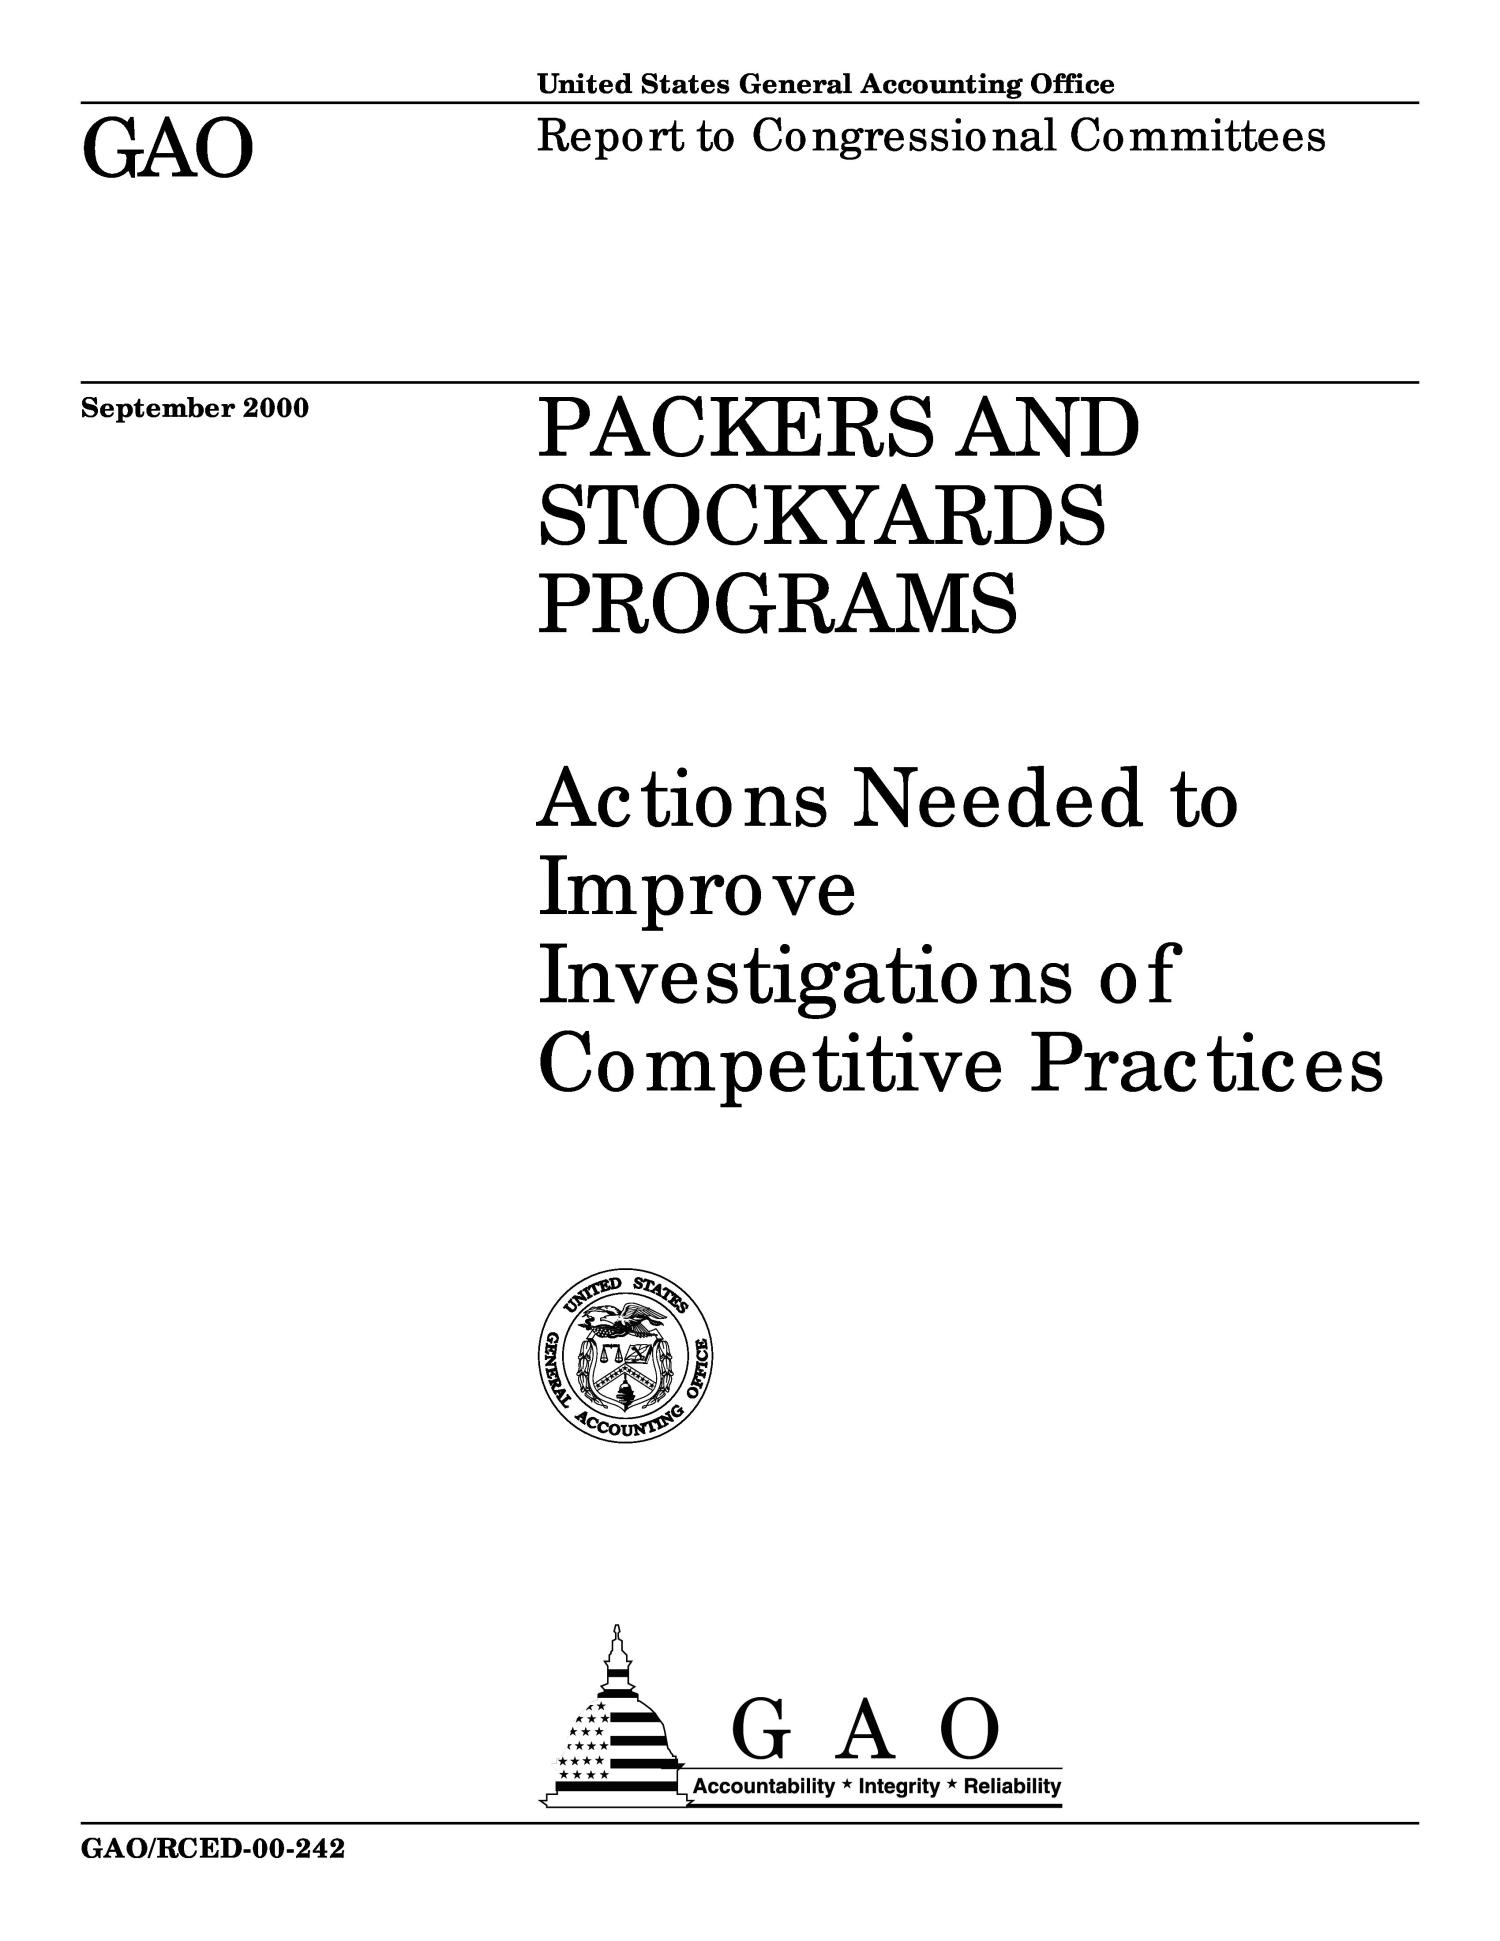 Packers and Stockyards Programs: Actions Needed to Improve Investigations of Competitive Practices                                                                                                      [Sequence #]: 1 of 50